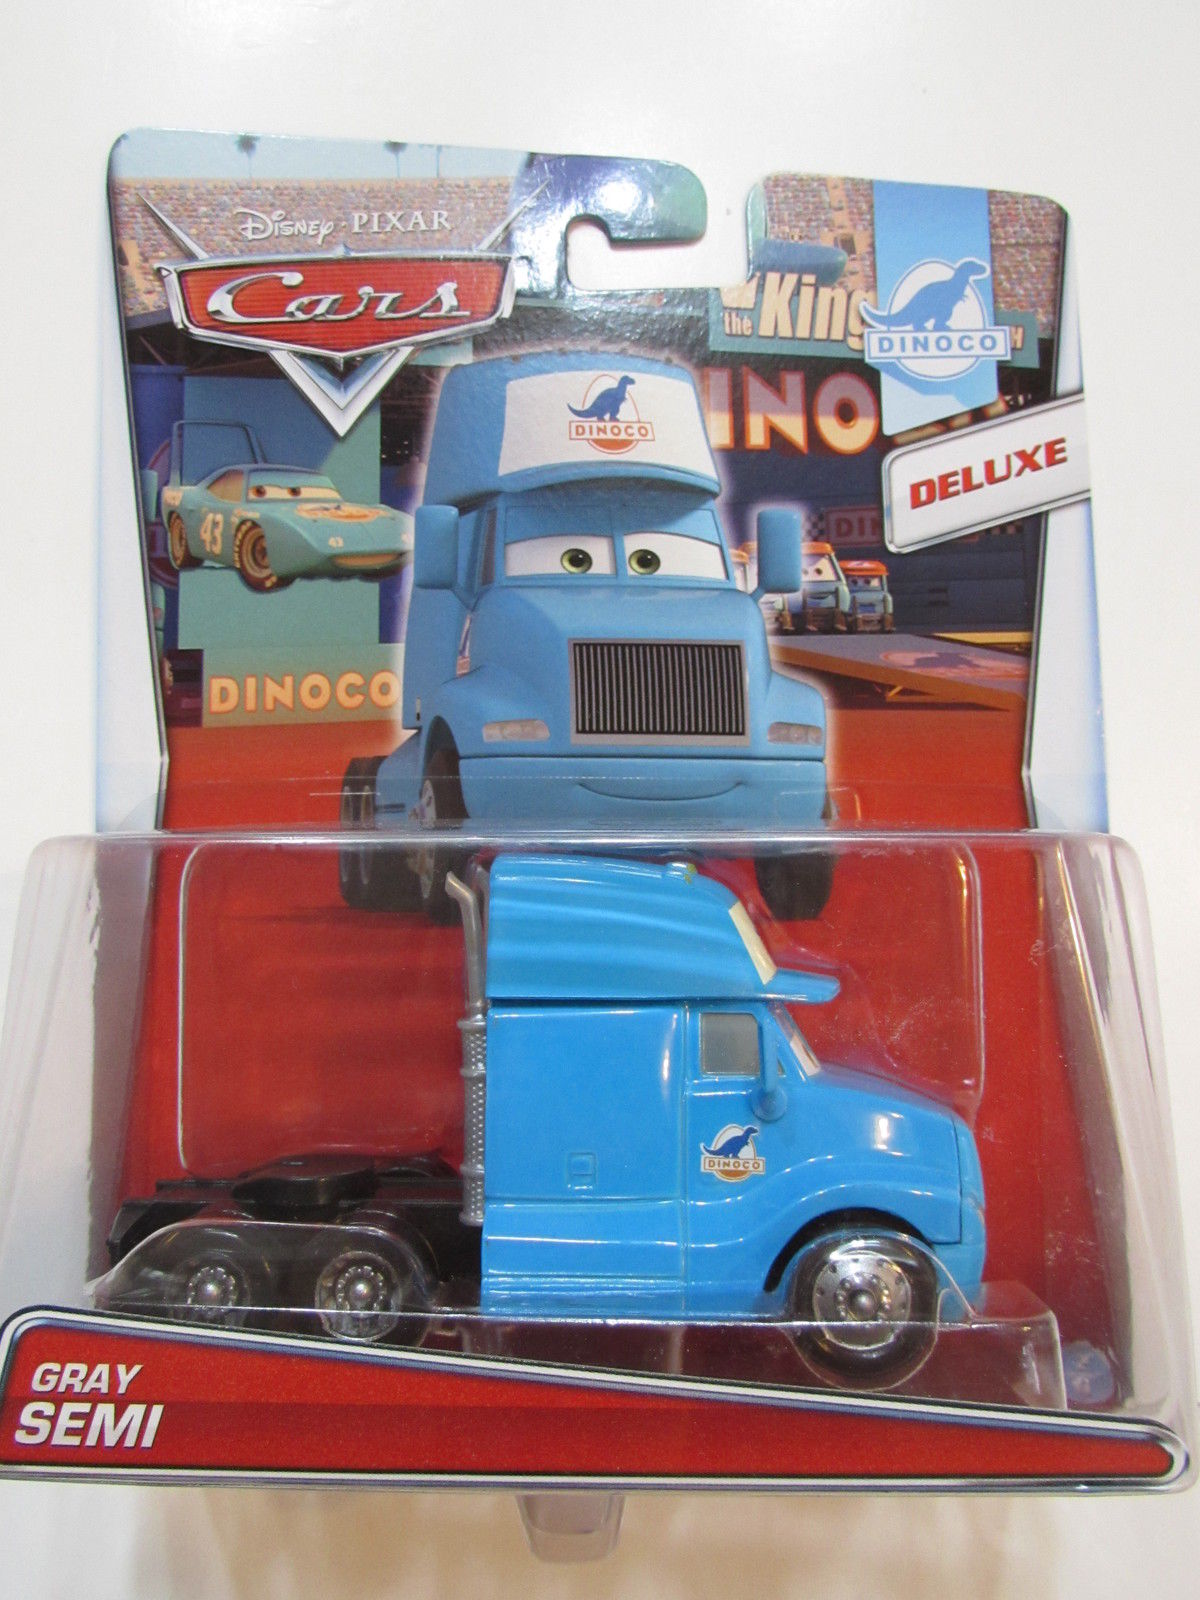 DISNEY PIXAR CAR DINOCO DELUXE - GRAY SEMI